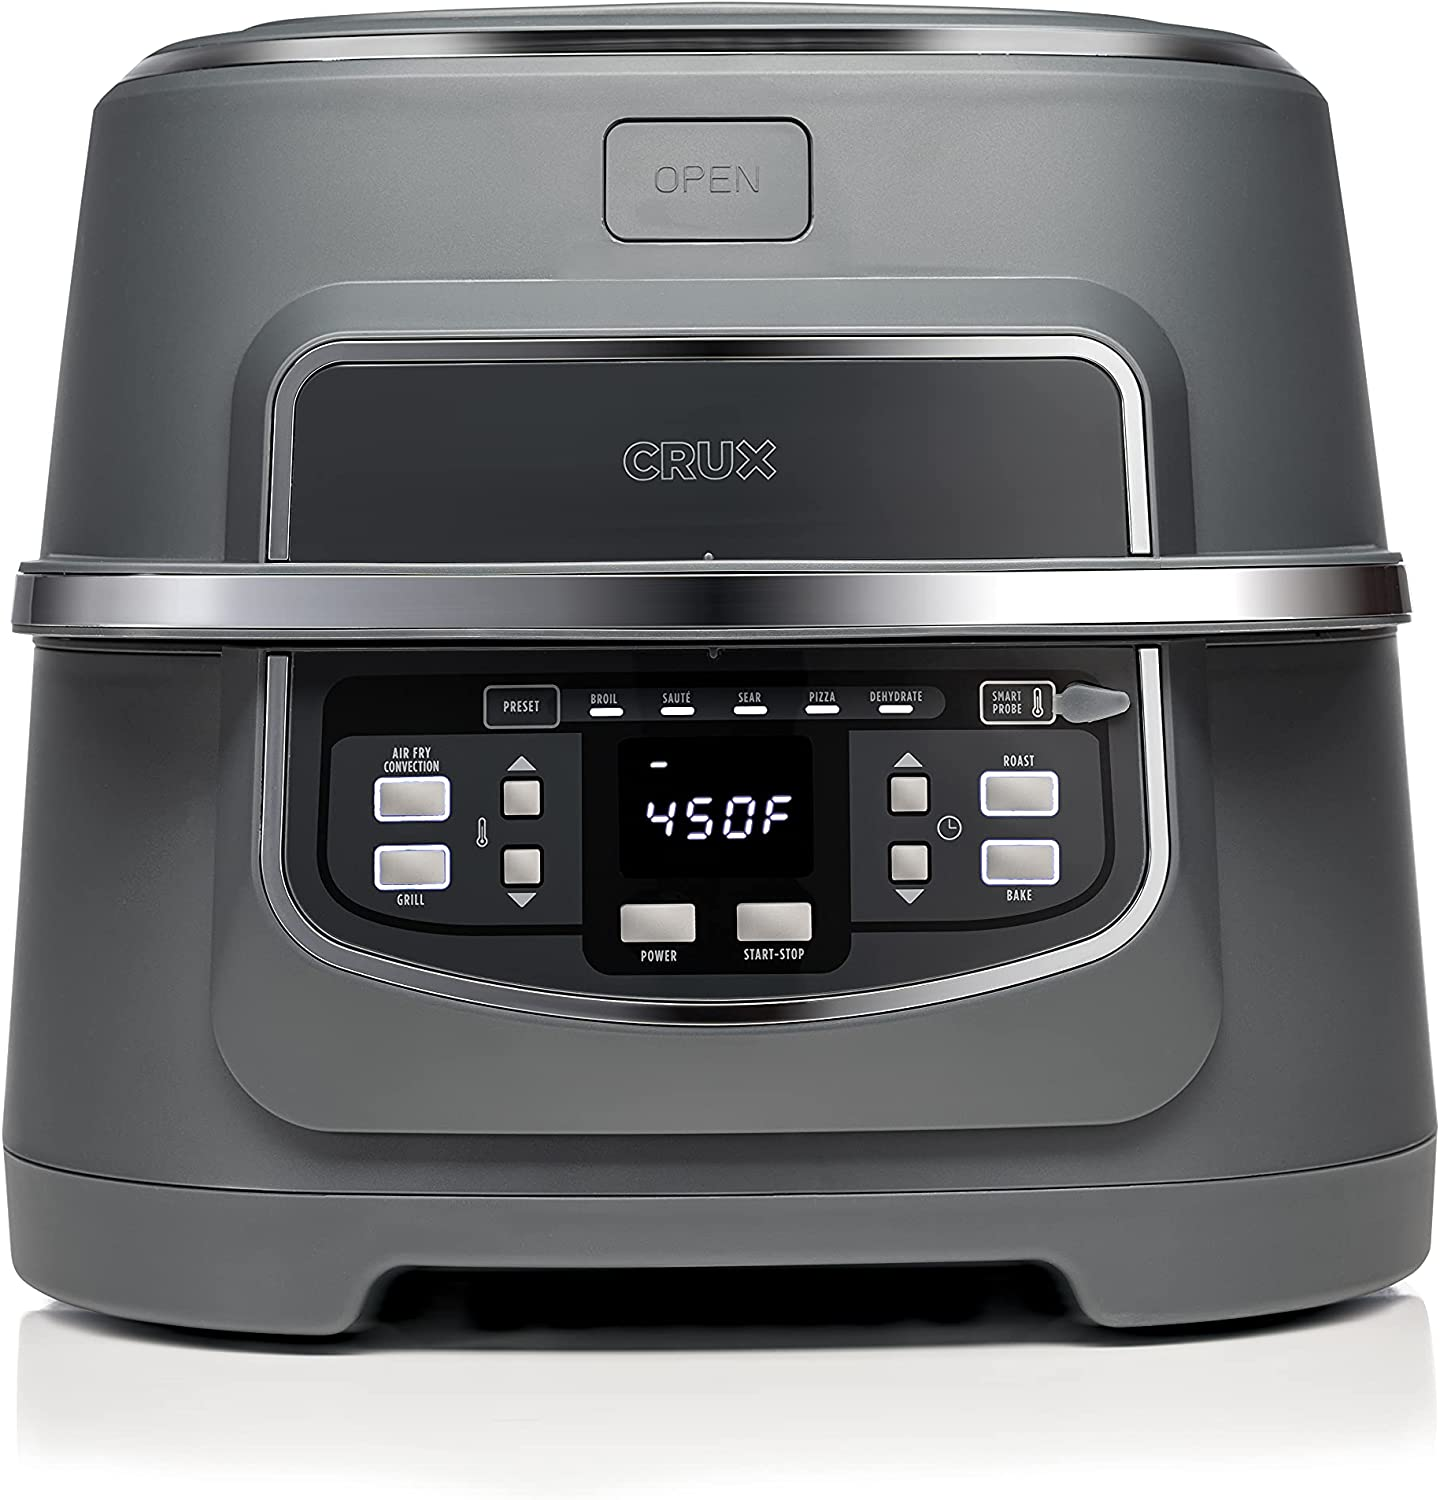 """CRUX Indoor Grill & Air Fryer, Fast and Easy Grilling, Roasting, Baking, Sautéing, Searing and Oil Free Air Frying, Recipe Book Included, 12"""" x 12"""" Grill, 9 QT Cook Pot, Matte Gray"""